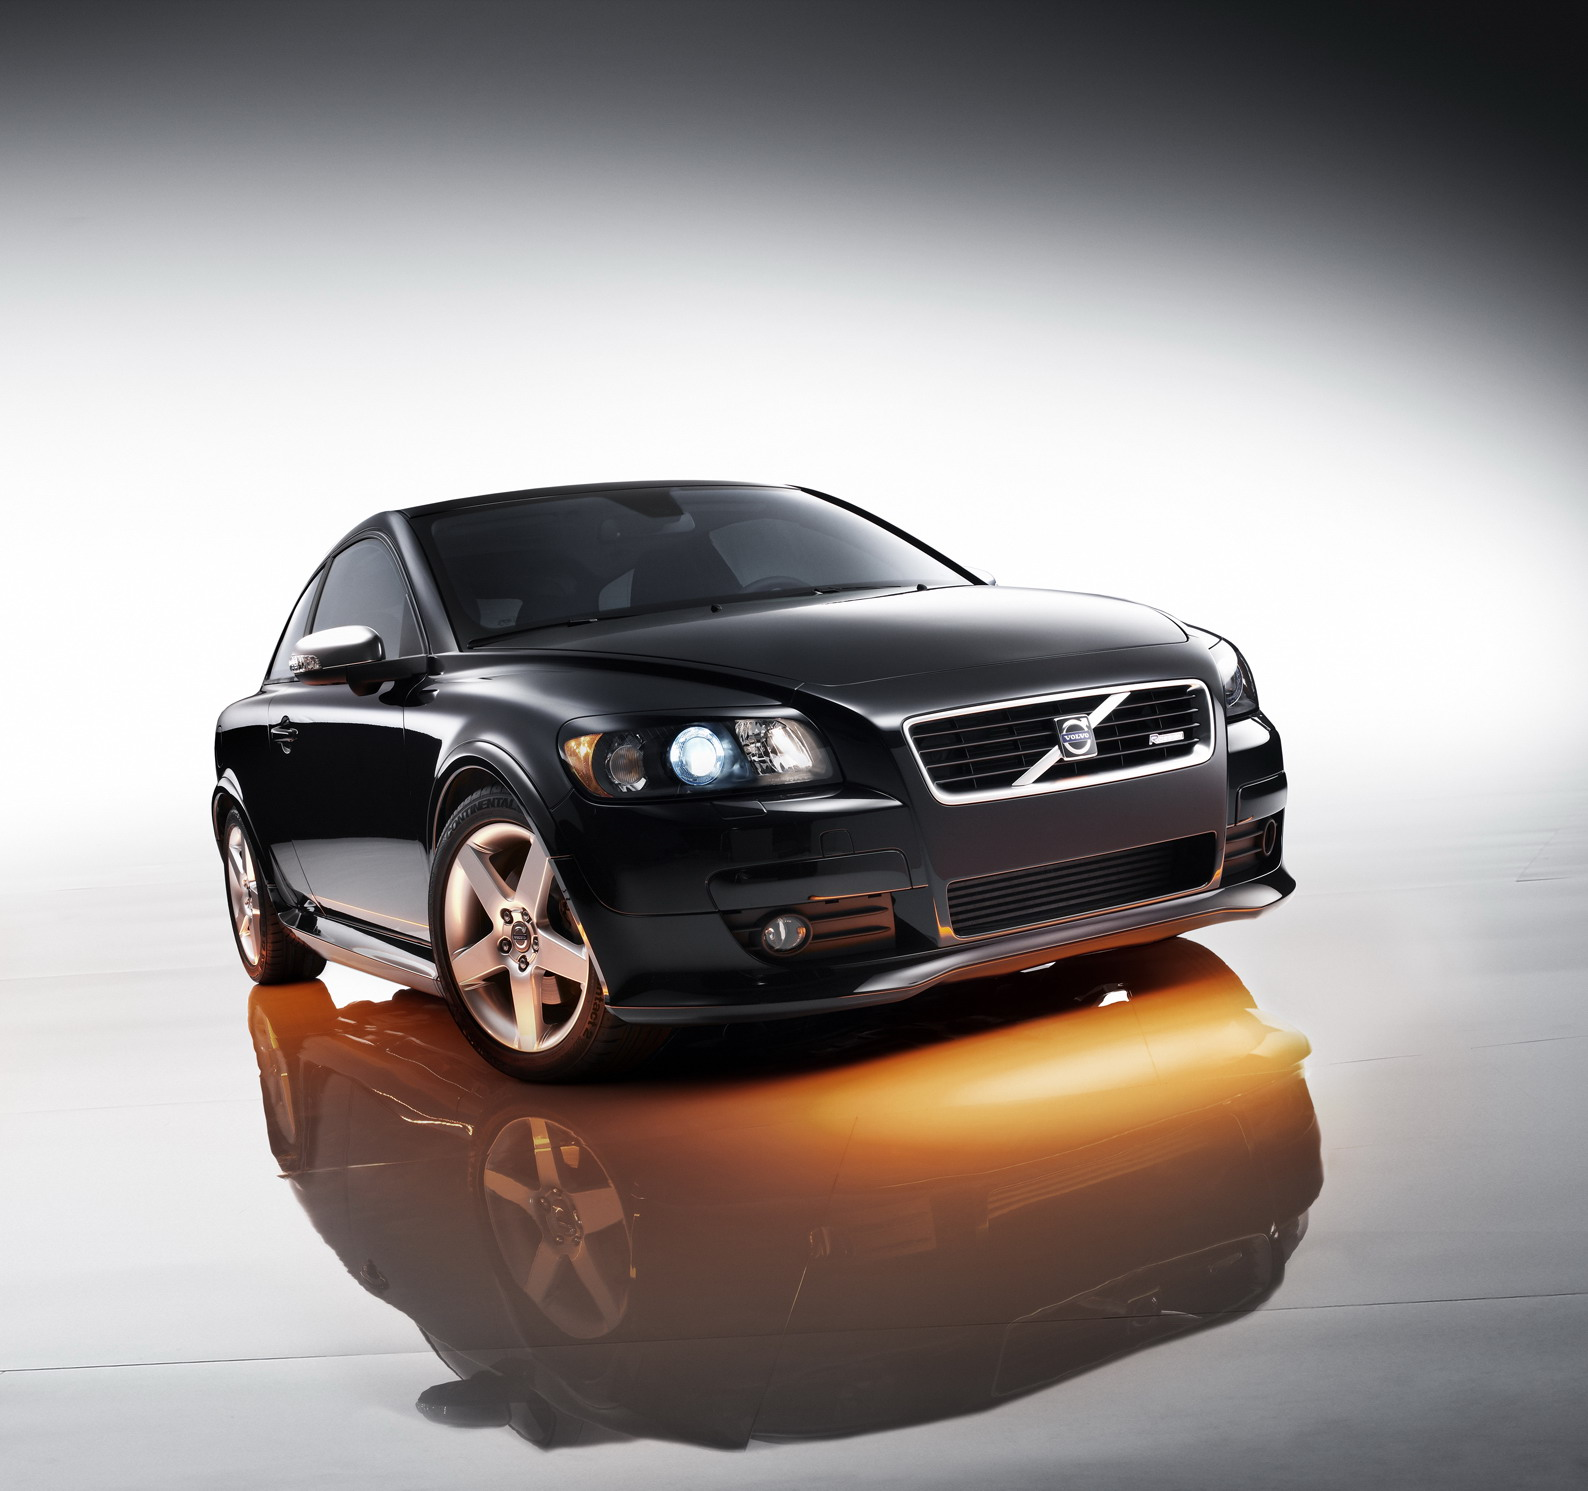 2008 Volvo C30 R-Design Review - Top Speed